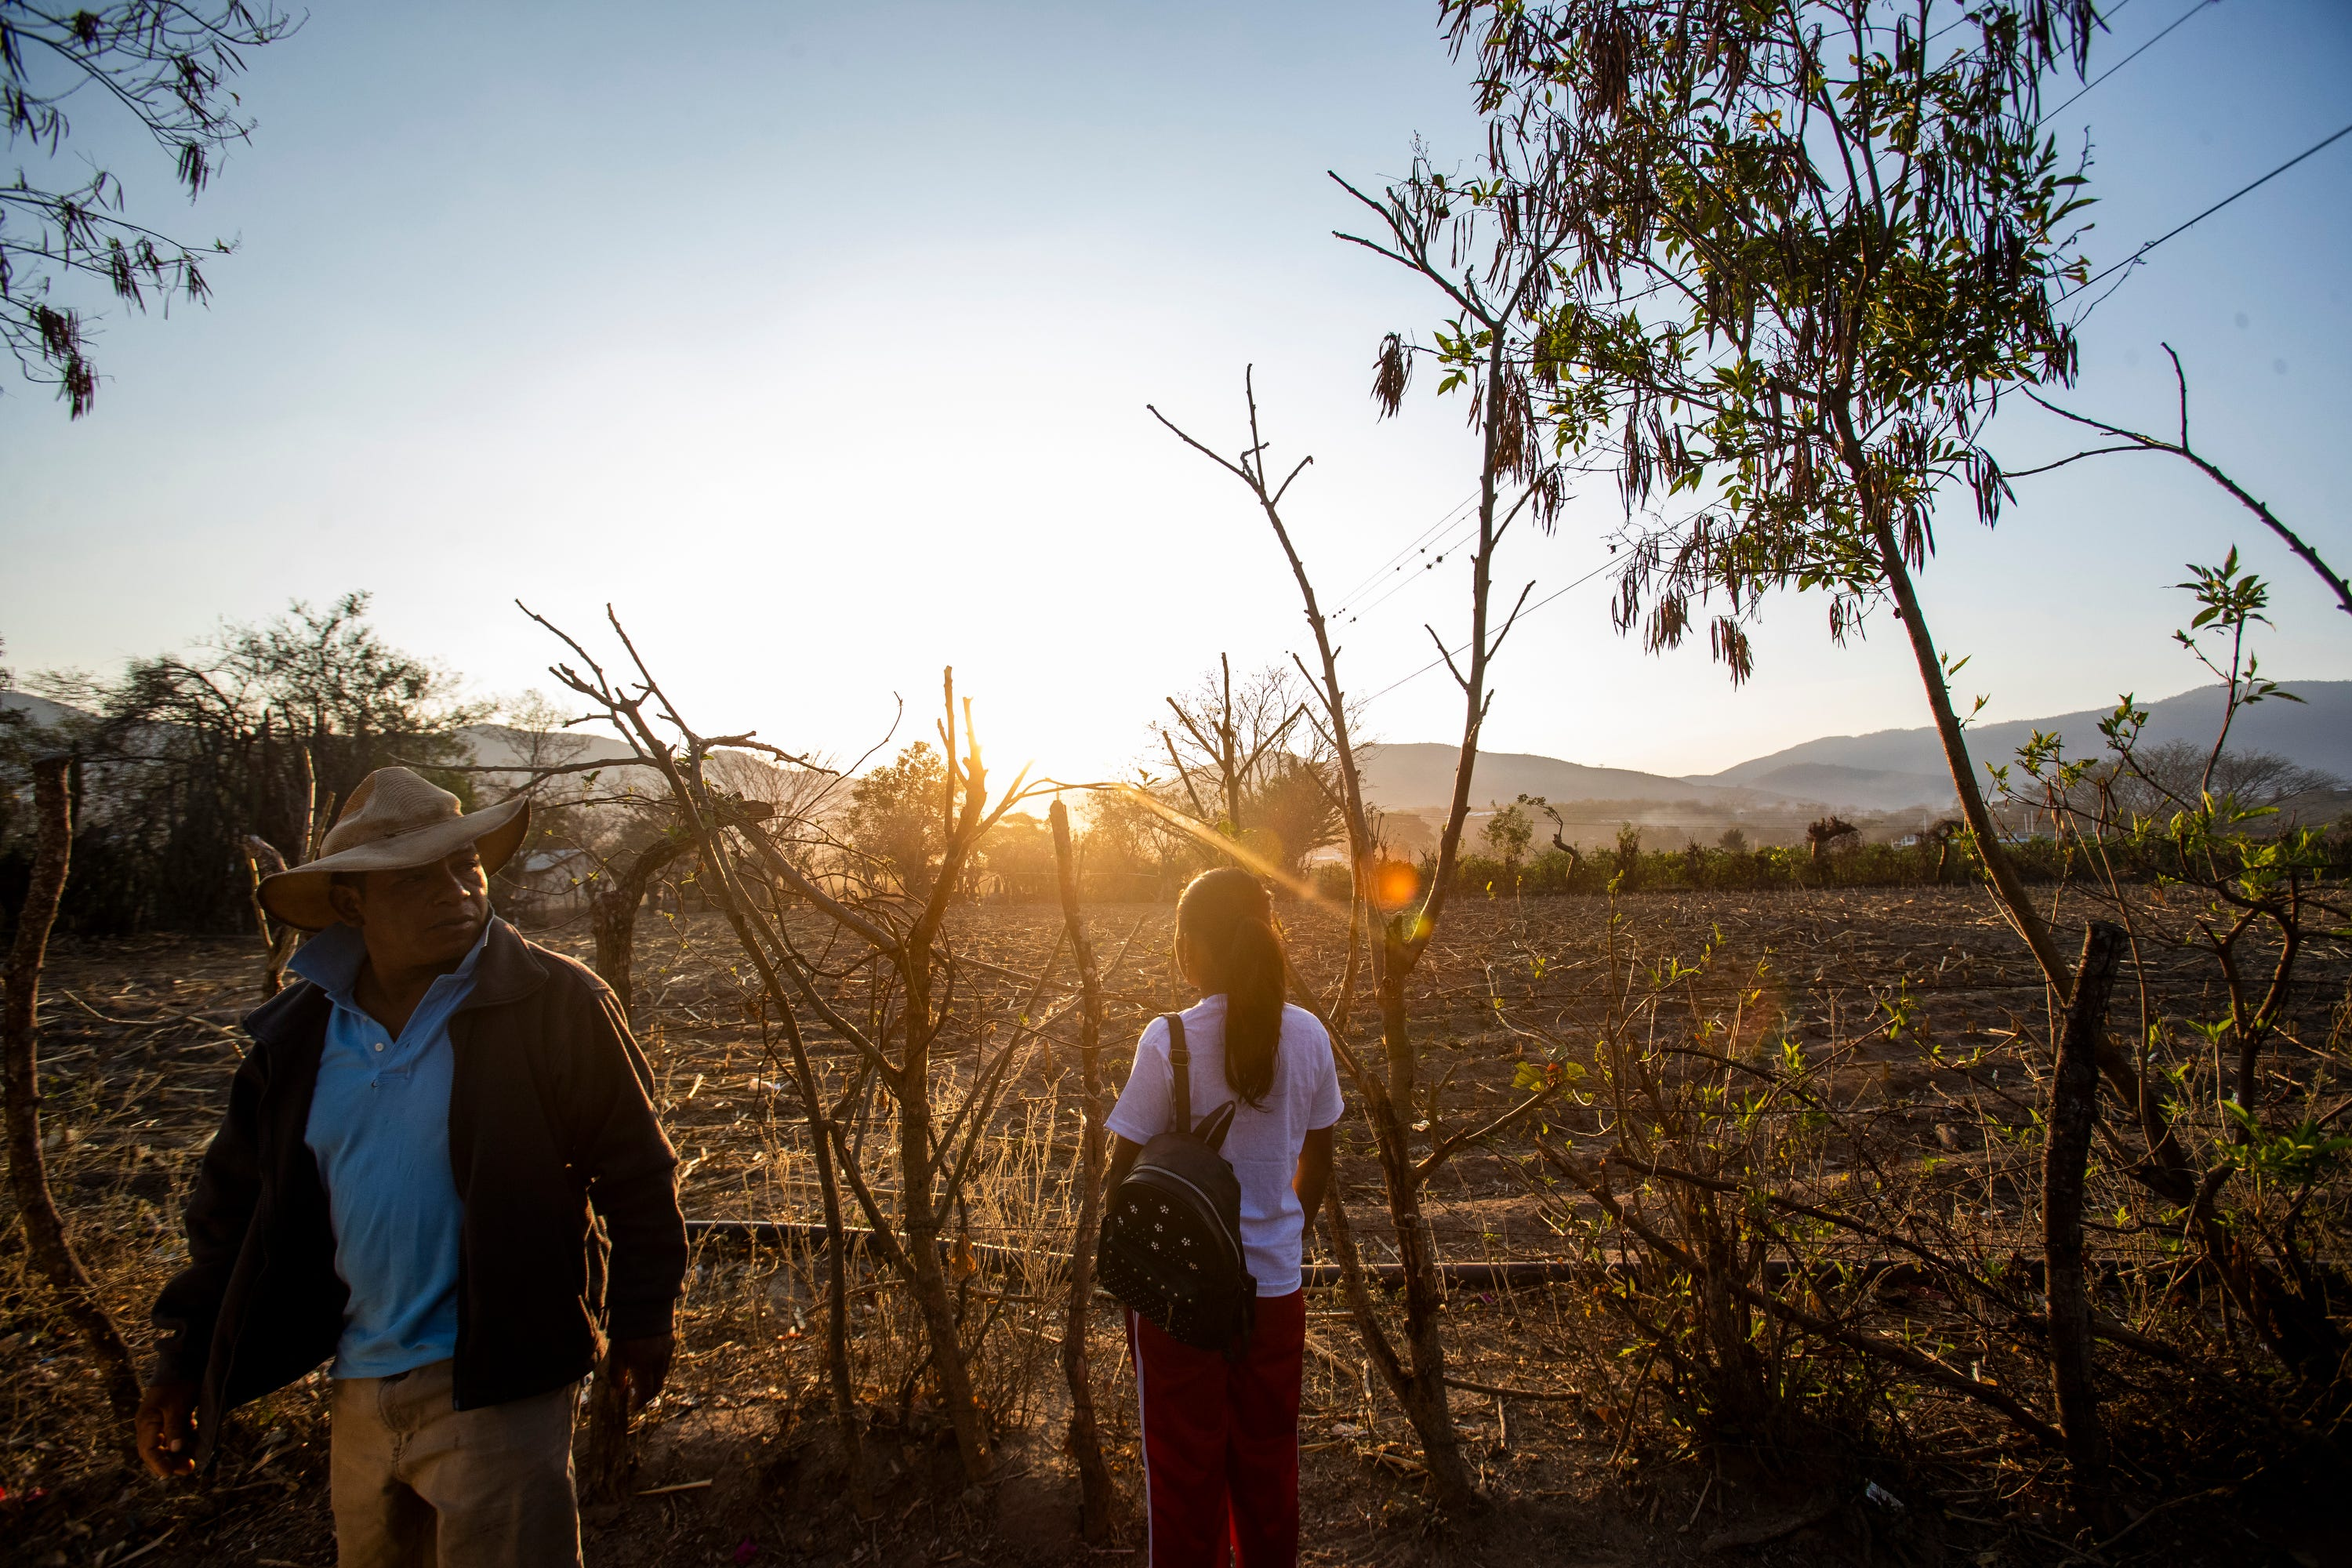 Francisco Sical gets ready to walk his daughter Melissa to school in Baja Verapaz, Guatemala, in March.